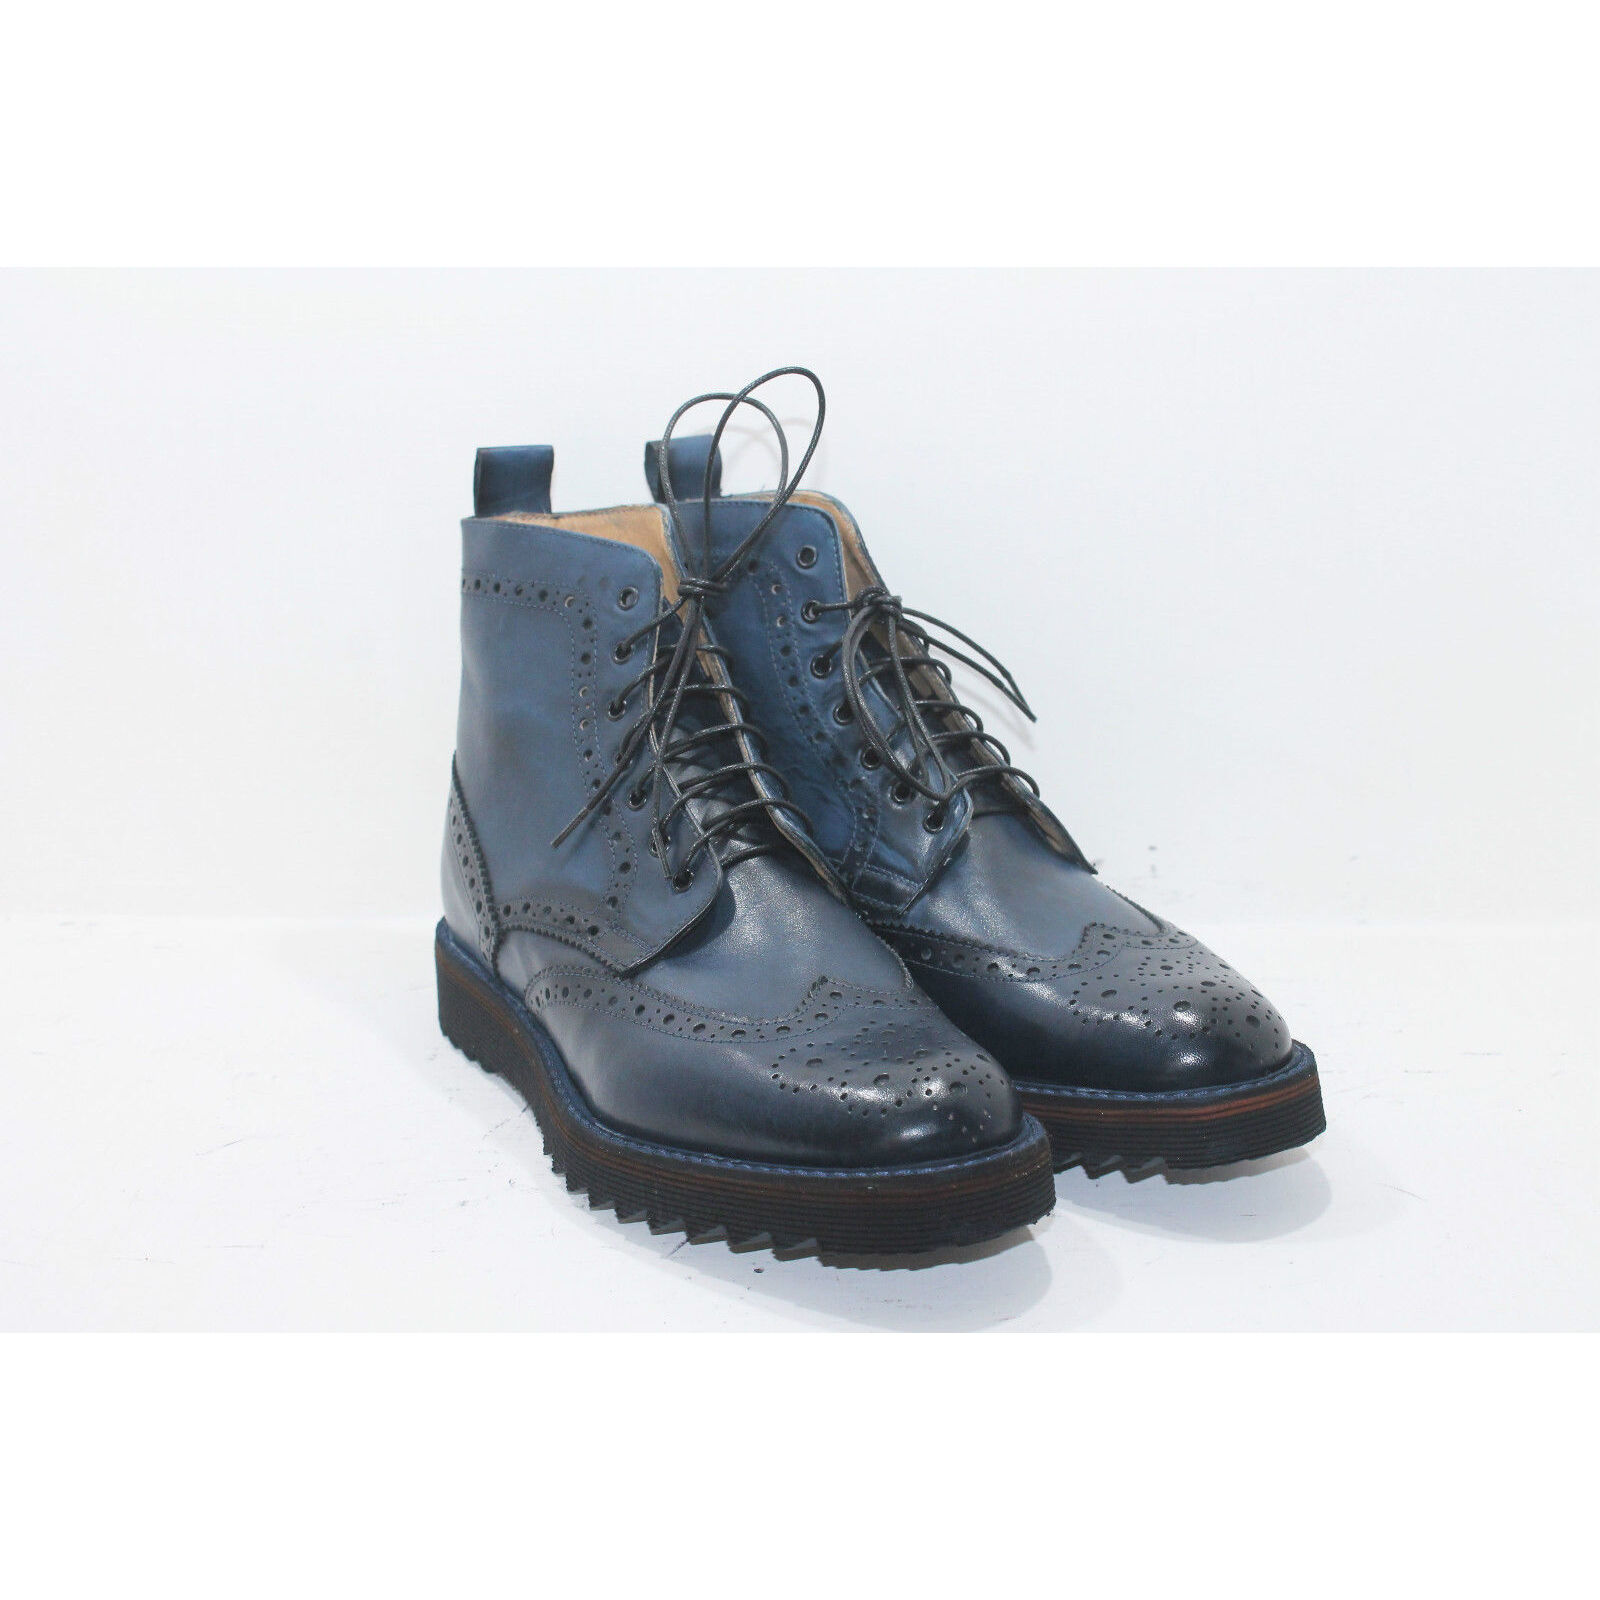 Stivaletto uomo inglese pelle blu scarpe Leather artigianali Made in Italy Leather scarpe boots 81d64a